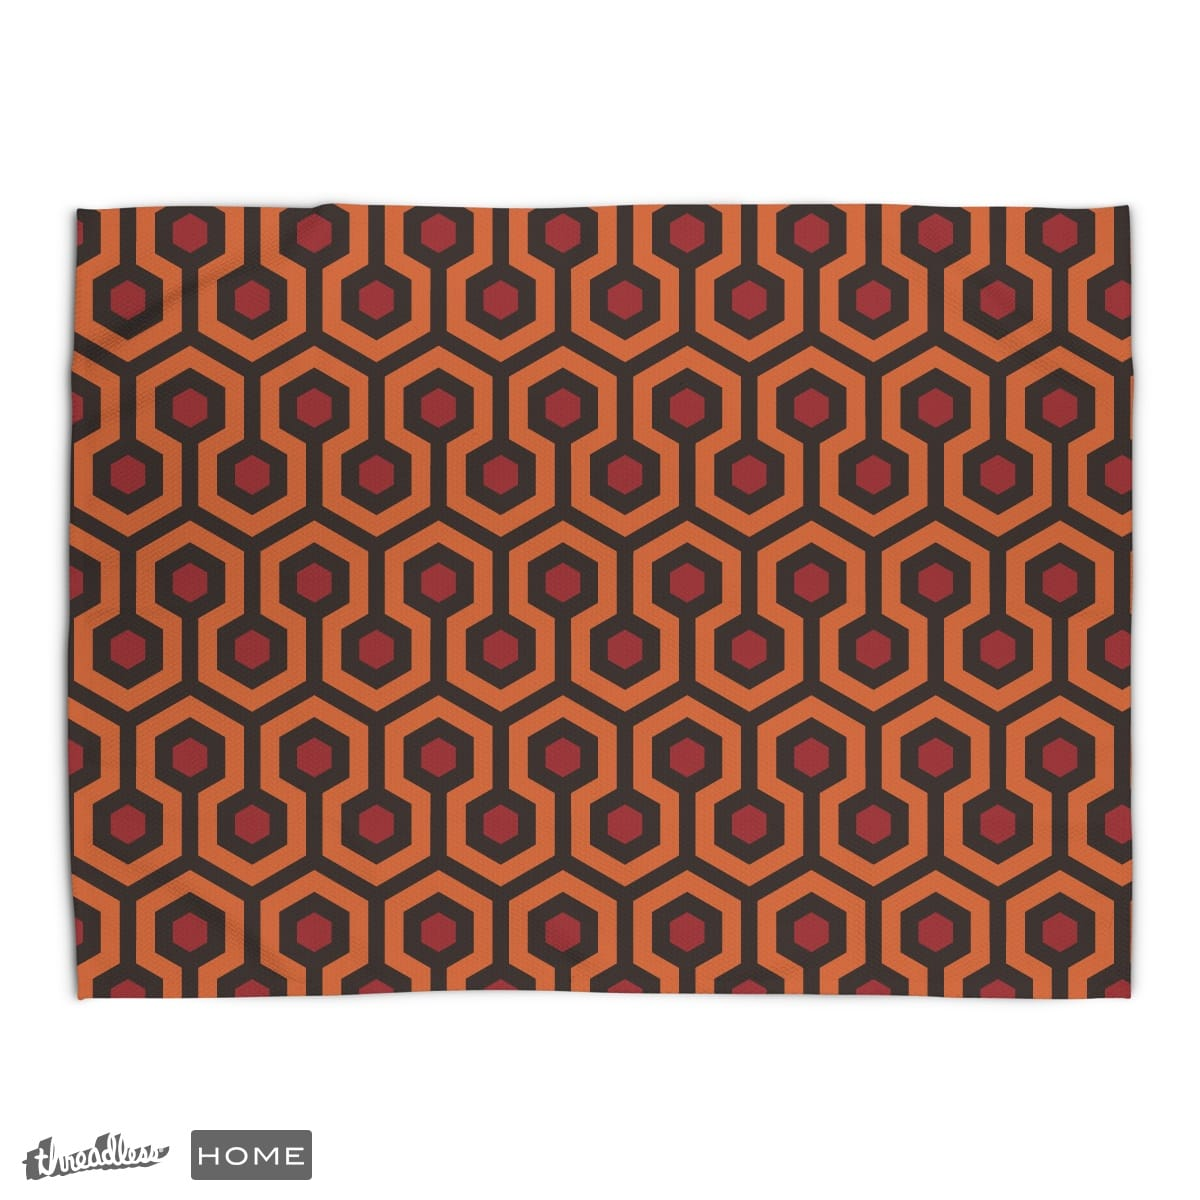 The Shining Overlook Hotel Rug by artboy213 on Threadless